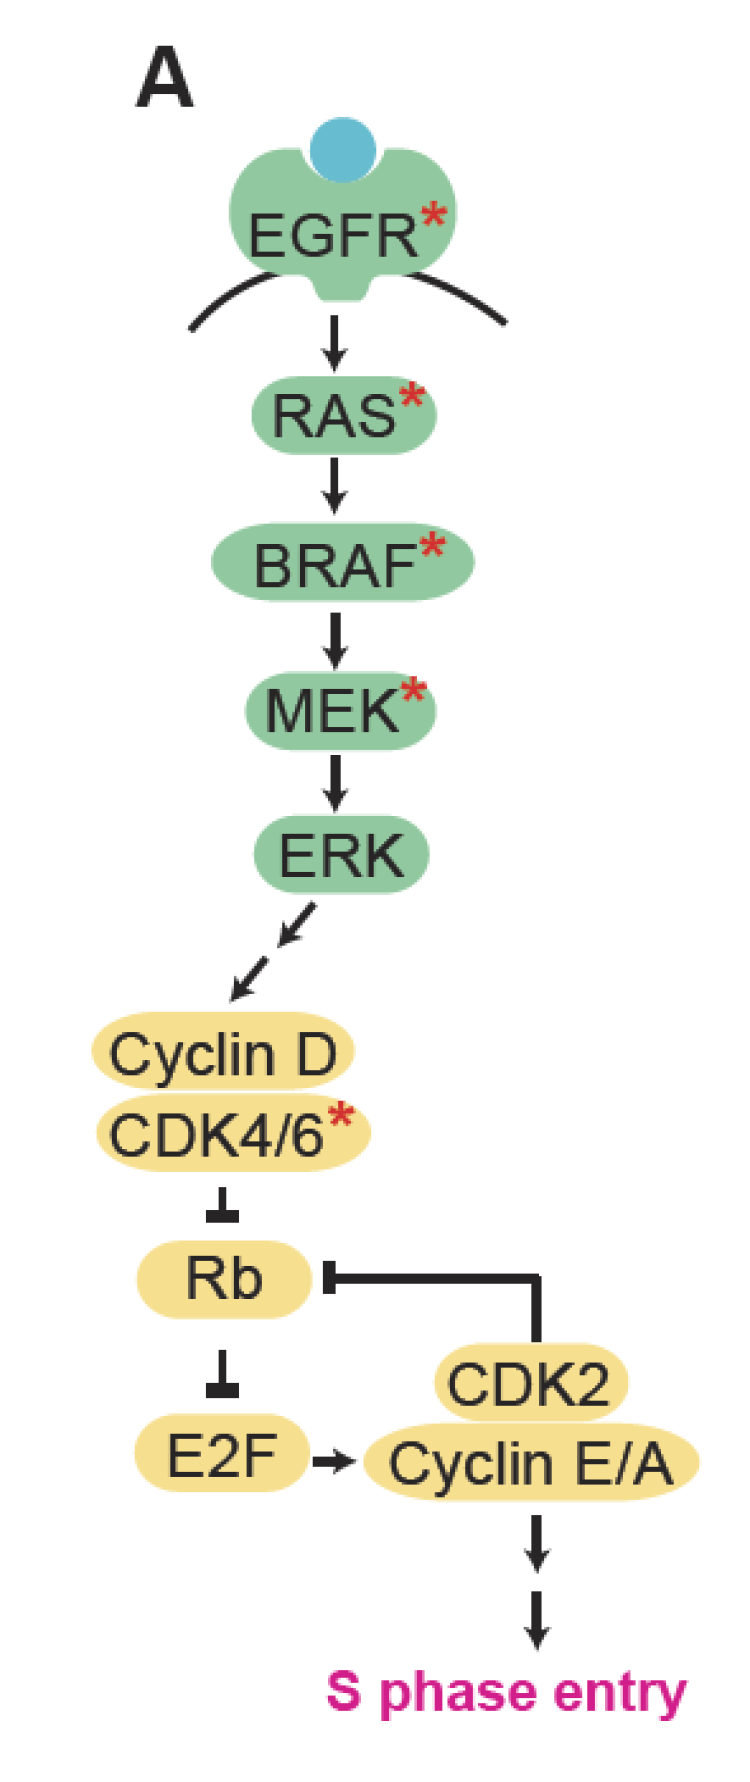 Schematic of MAPK signaling (green) driving cell-cycle entry (yellow). Red stars mark targets to be drugged in the proposed work.